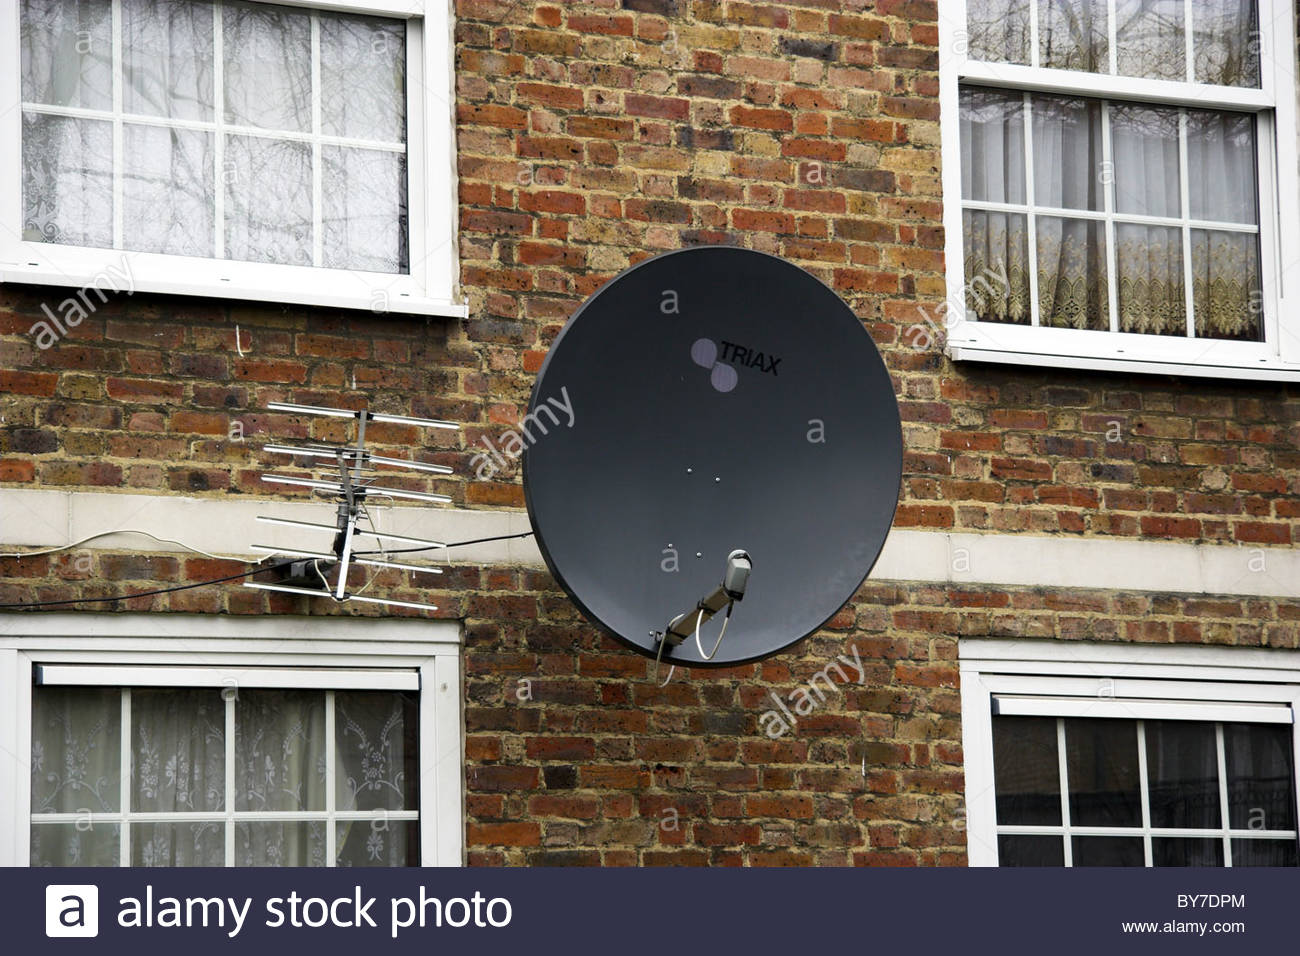 a television satellite dish on the side of apartments in london